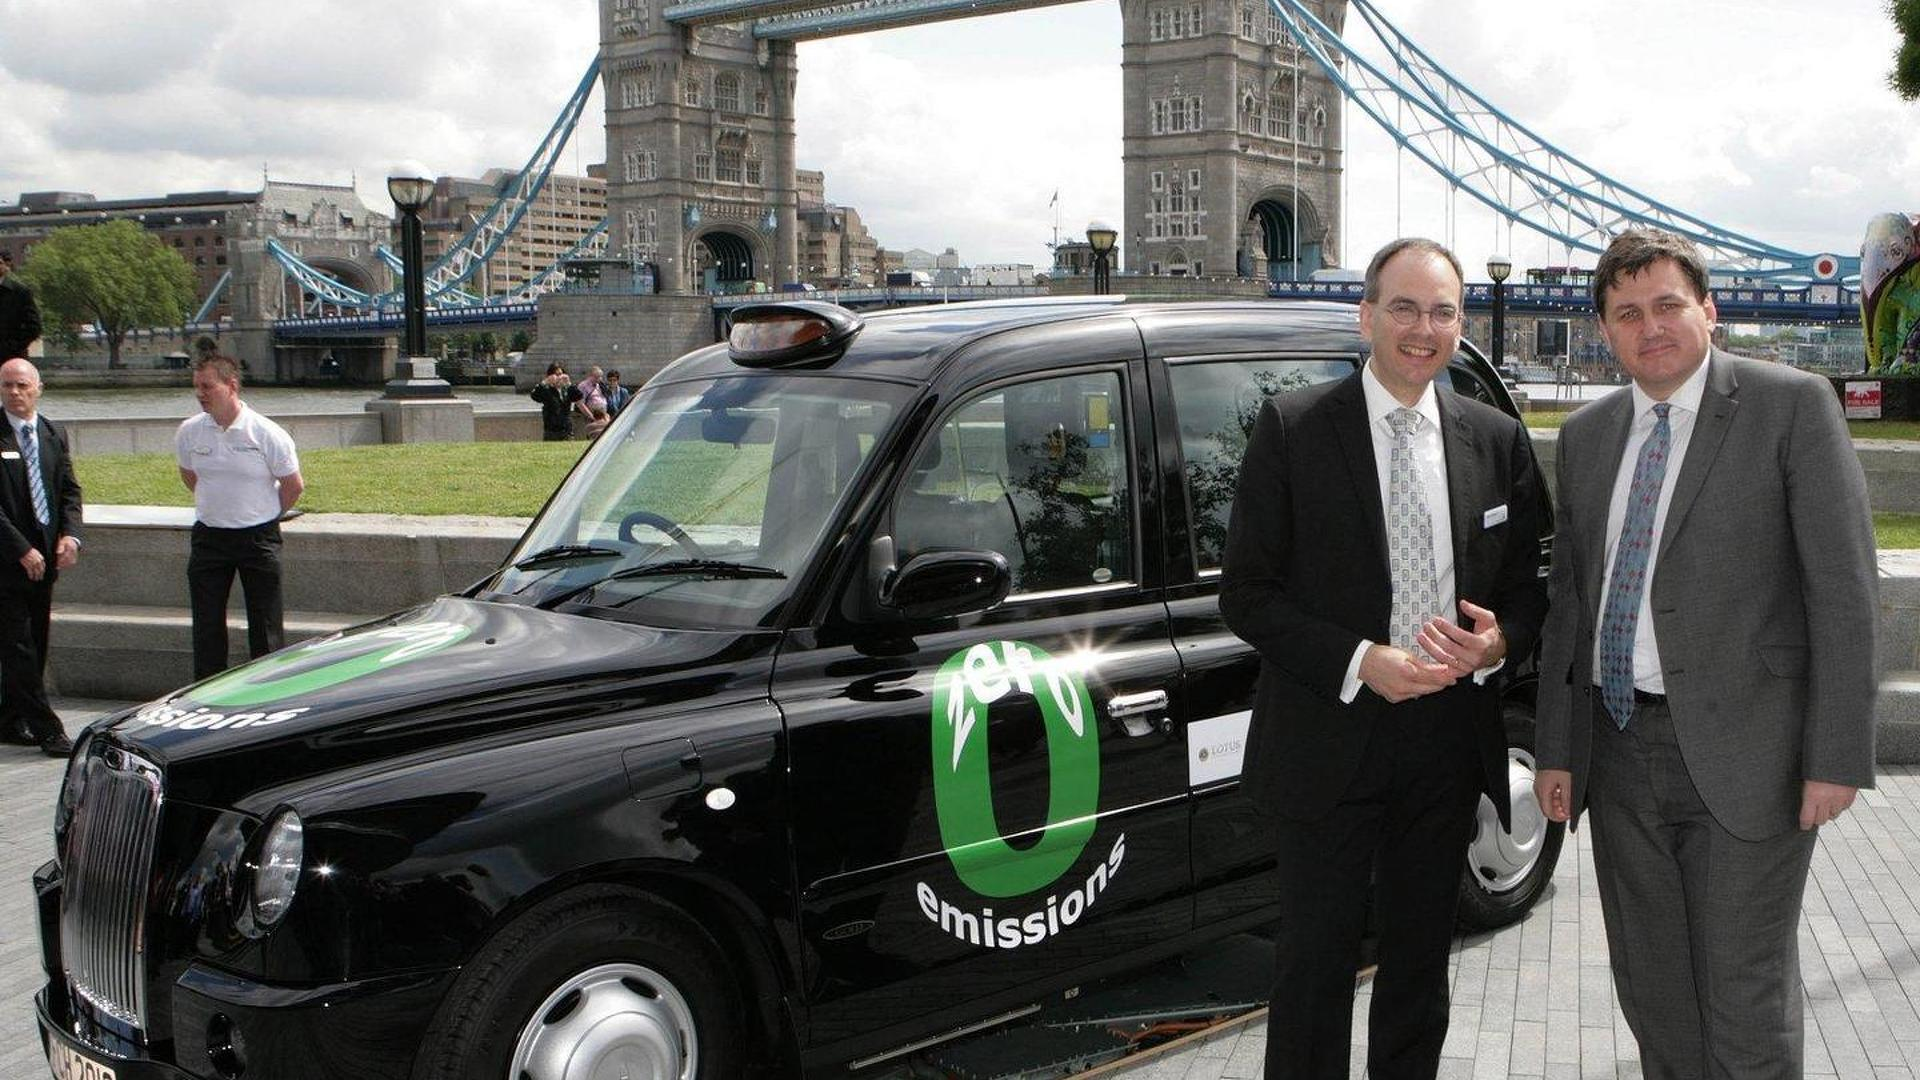 Hydrogen powered London taxi ready for launch in 2012